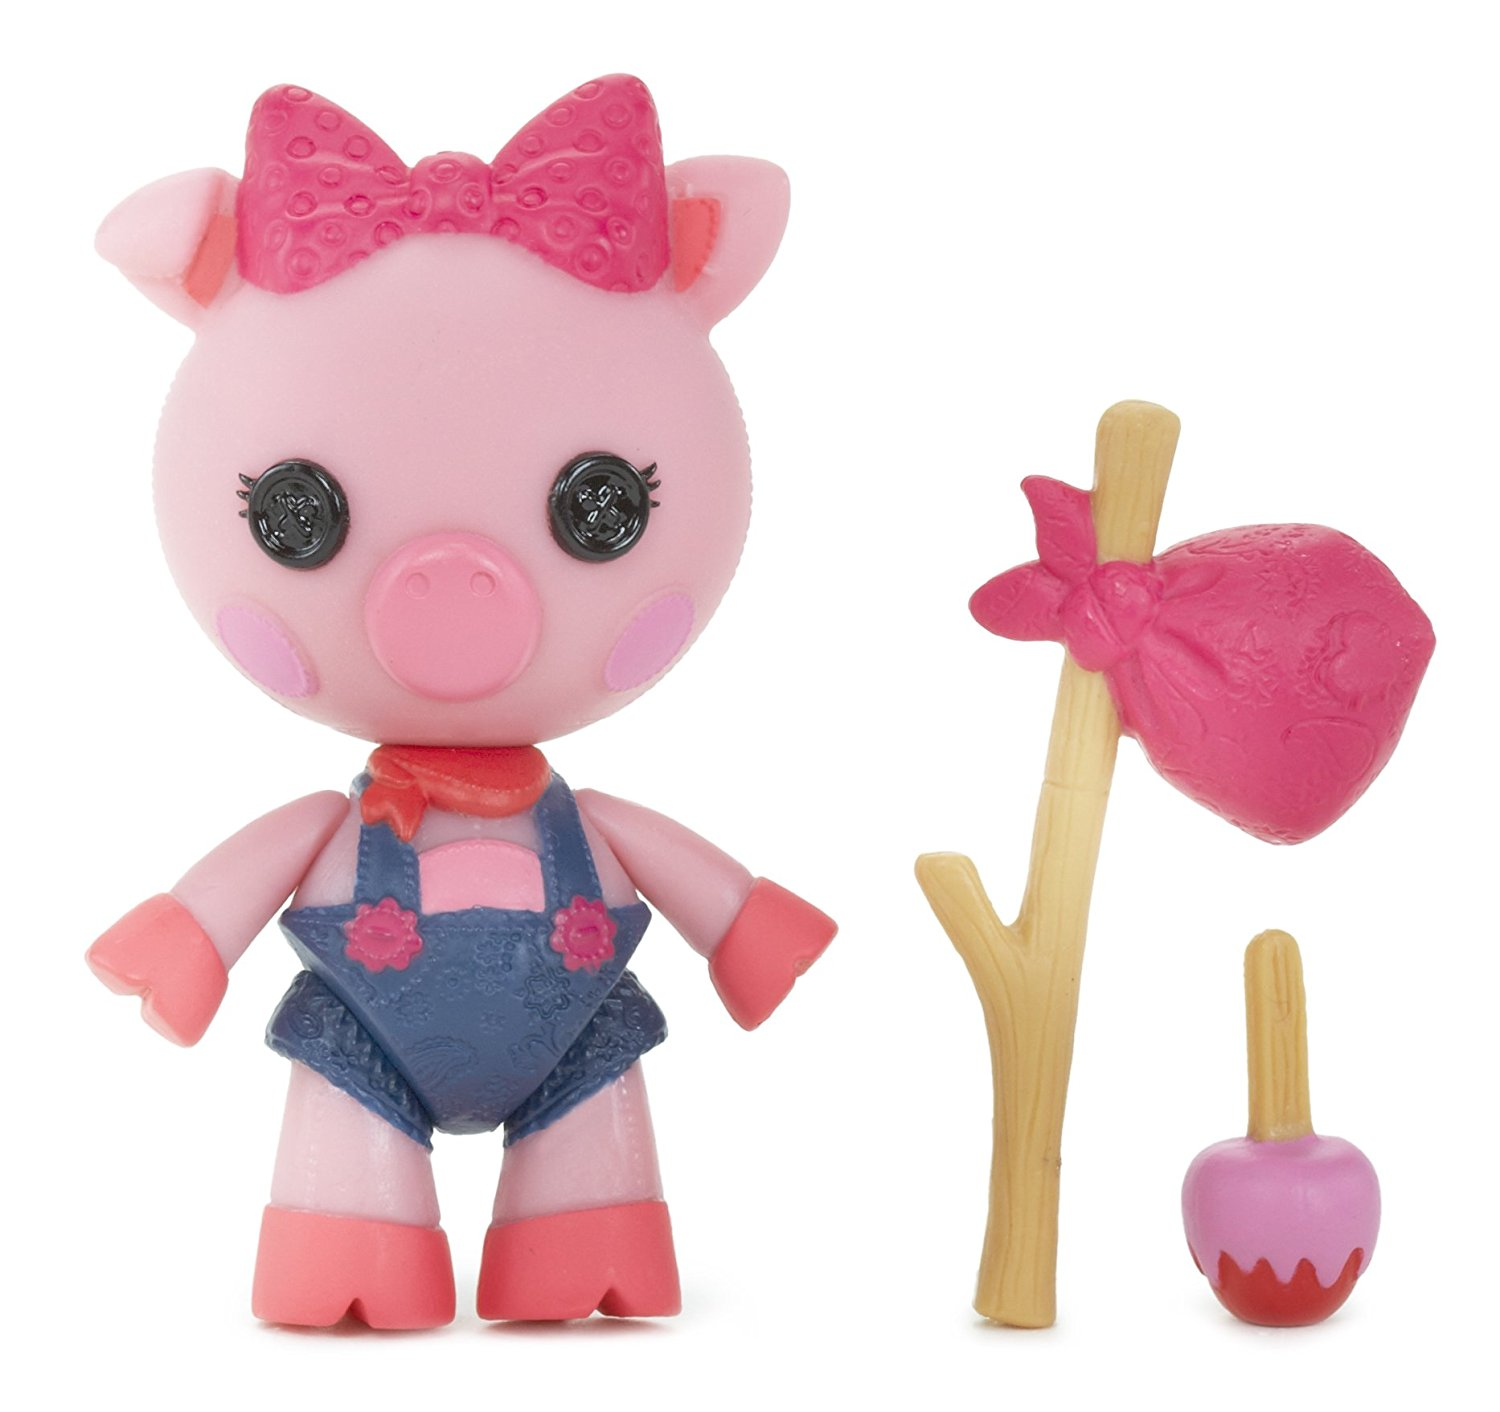 Mini Pet Pals Doll- Belly Curly Tail, Mini Lalaloopsy Pet Pals doll Belly Curly Tail magically came to life when her last stitch was sewn By Lalaloopsy